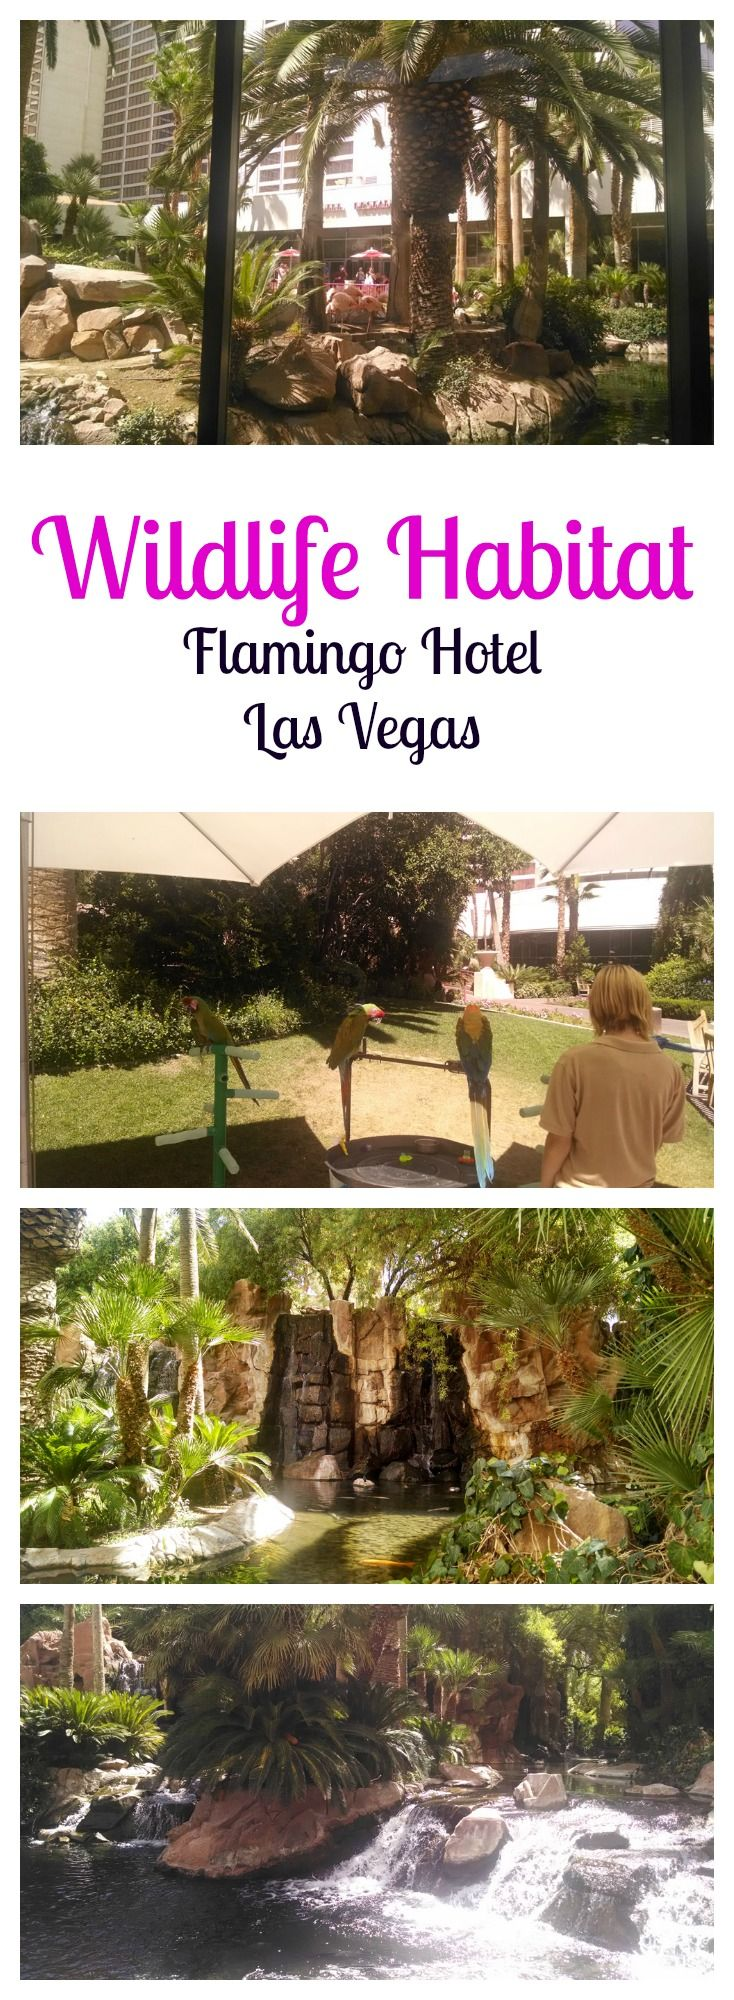 The Flamingo Wildlife Habitat in Flamingo Hotel Las Vegas